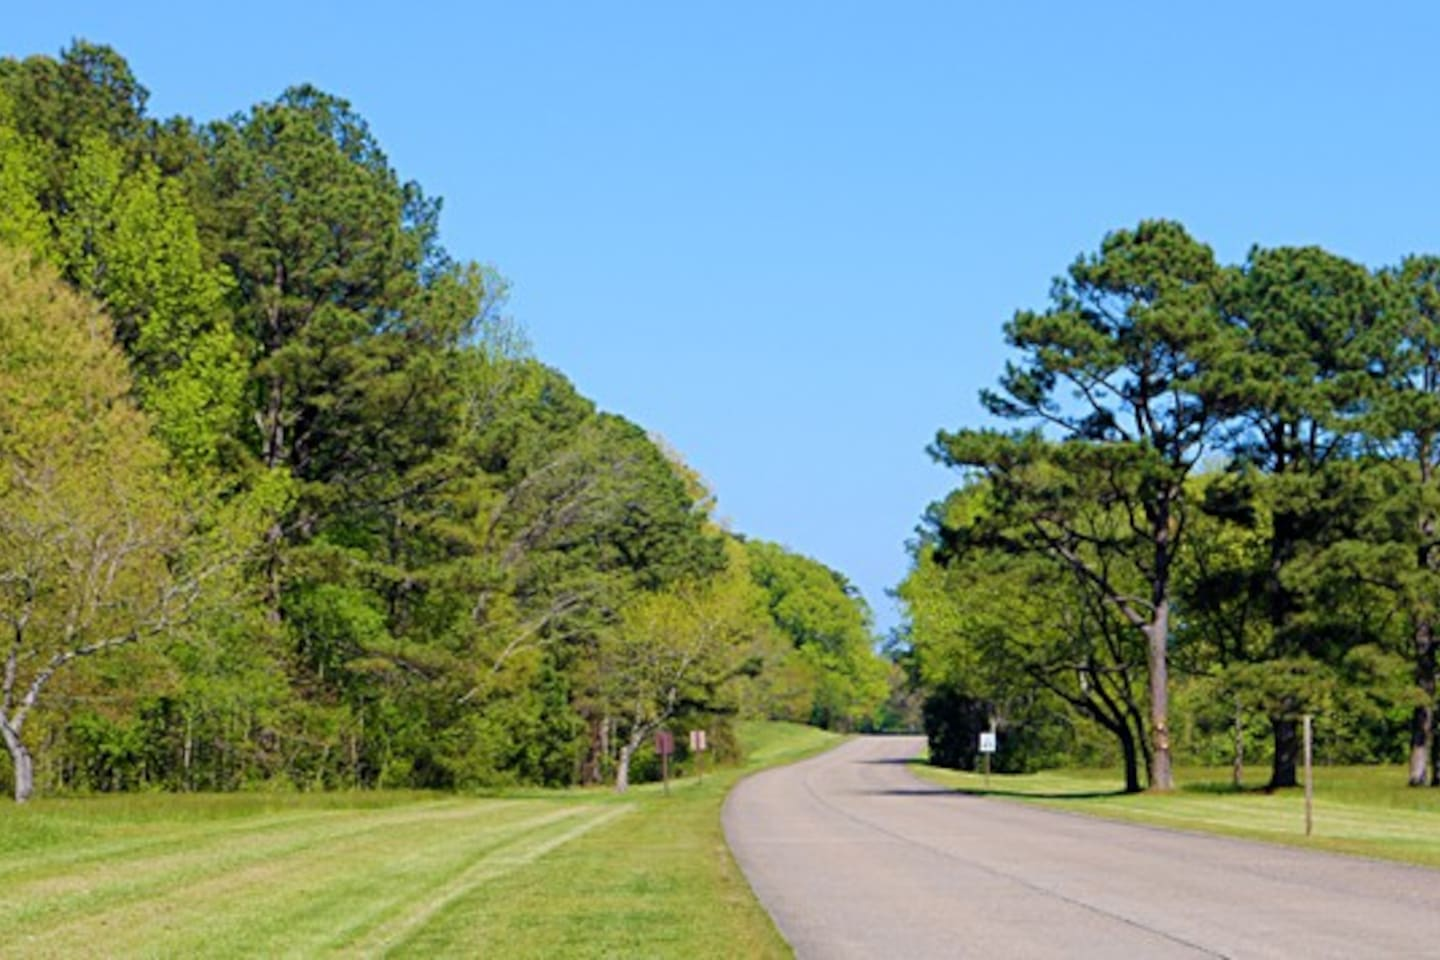 Property backs up to the Colonial Parkway, which is a short walk away from the property take a bike ride or a walk